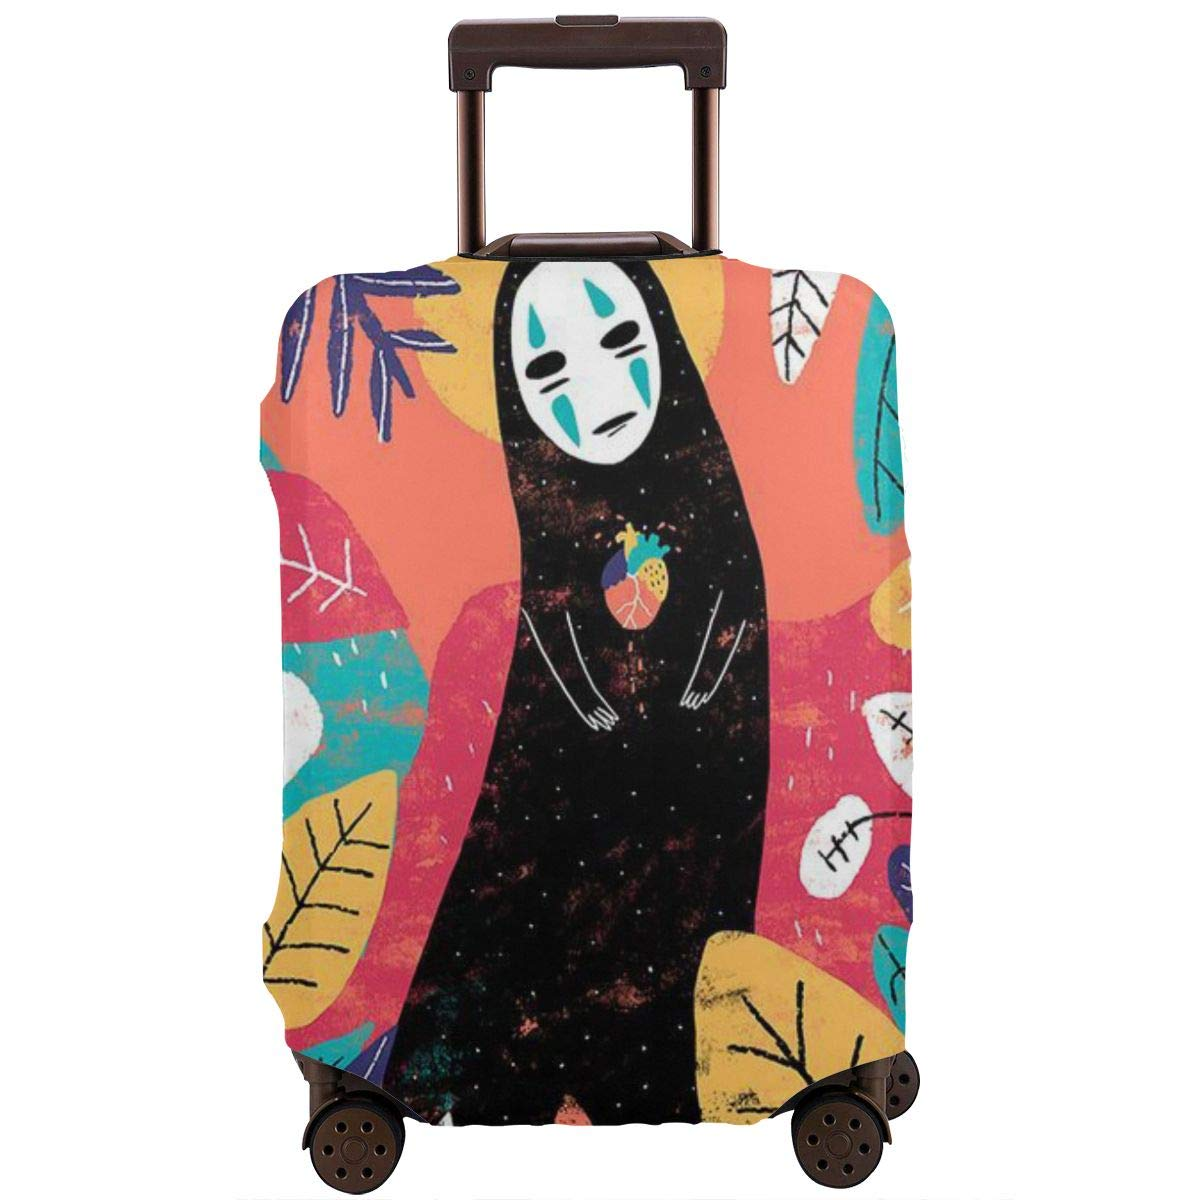 Travel Luggage Cover Cartoon Spirited Away No Face Man Travel Luggage Cover Suitcase Protector Fits 26-28 Inch Washable Baggage Covers